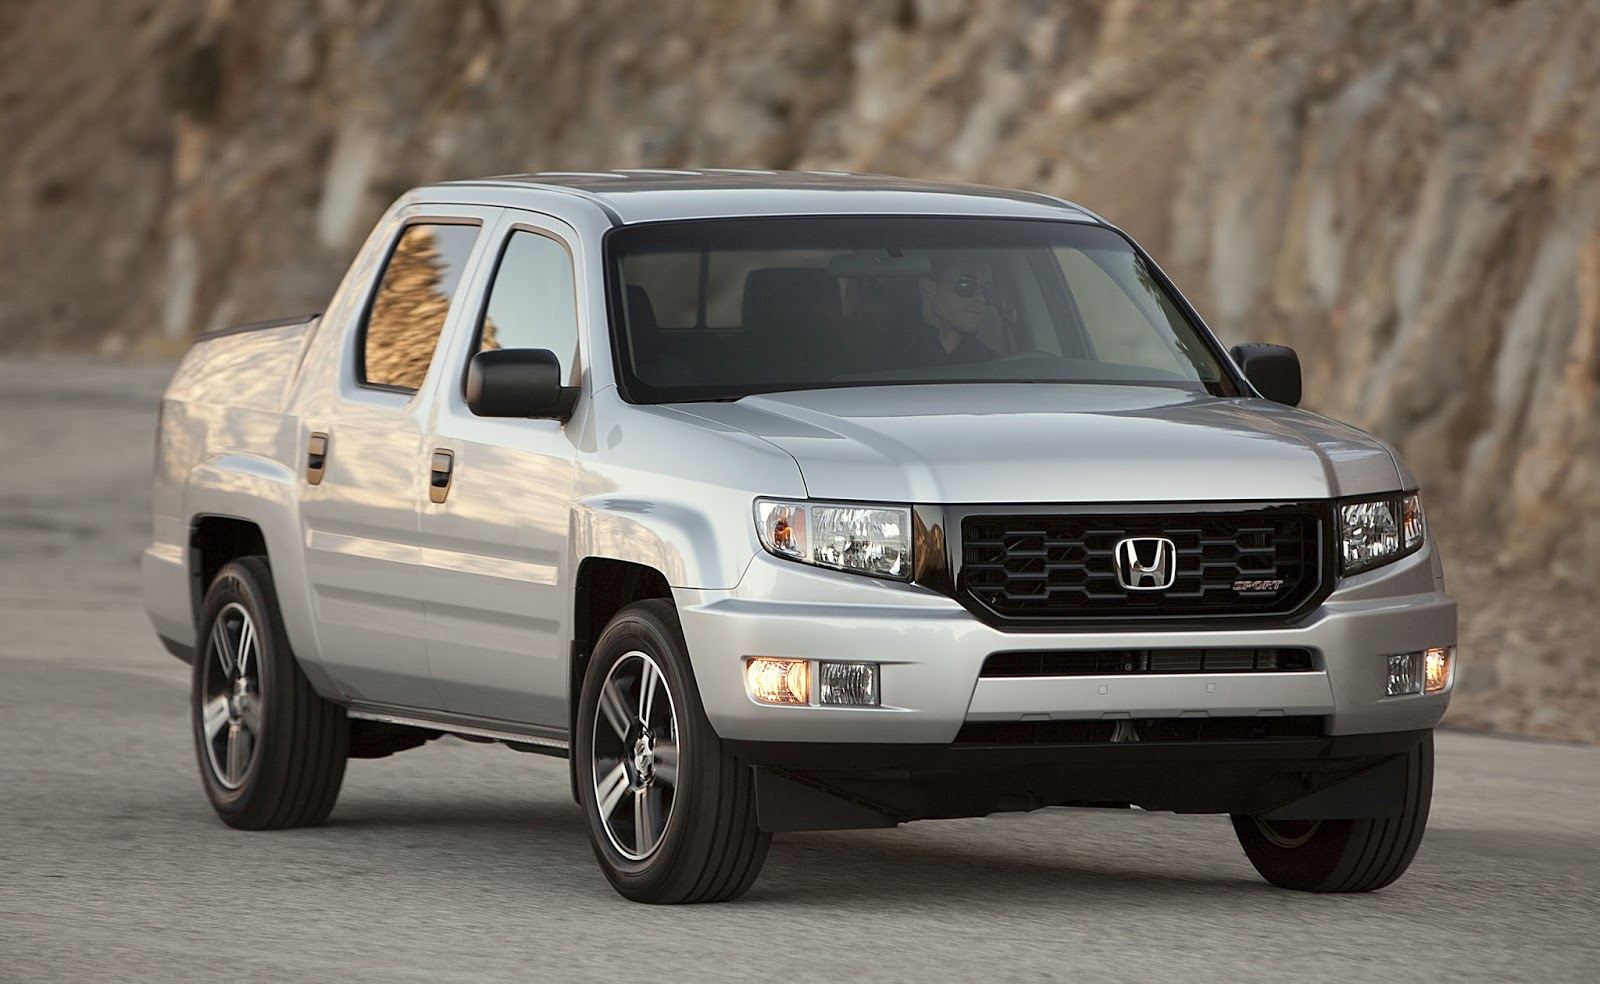 2014_Honda_Ridge_Sport+fr+3 4+action uautoknow net honda announces 2014 ridgeline pricing and new Honda Ridgeline Fuse Box Wiring Diagram at eliteediting.co